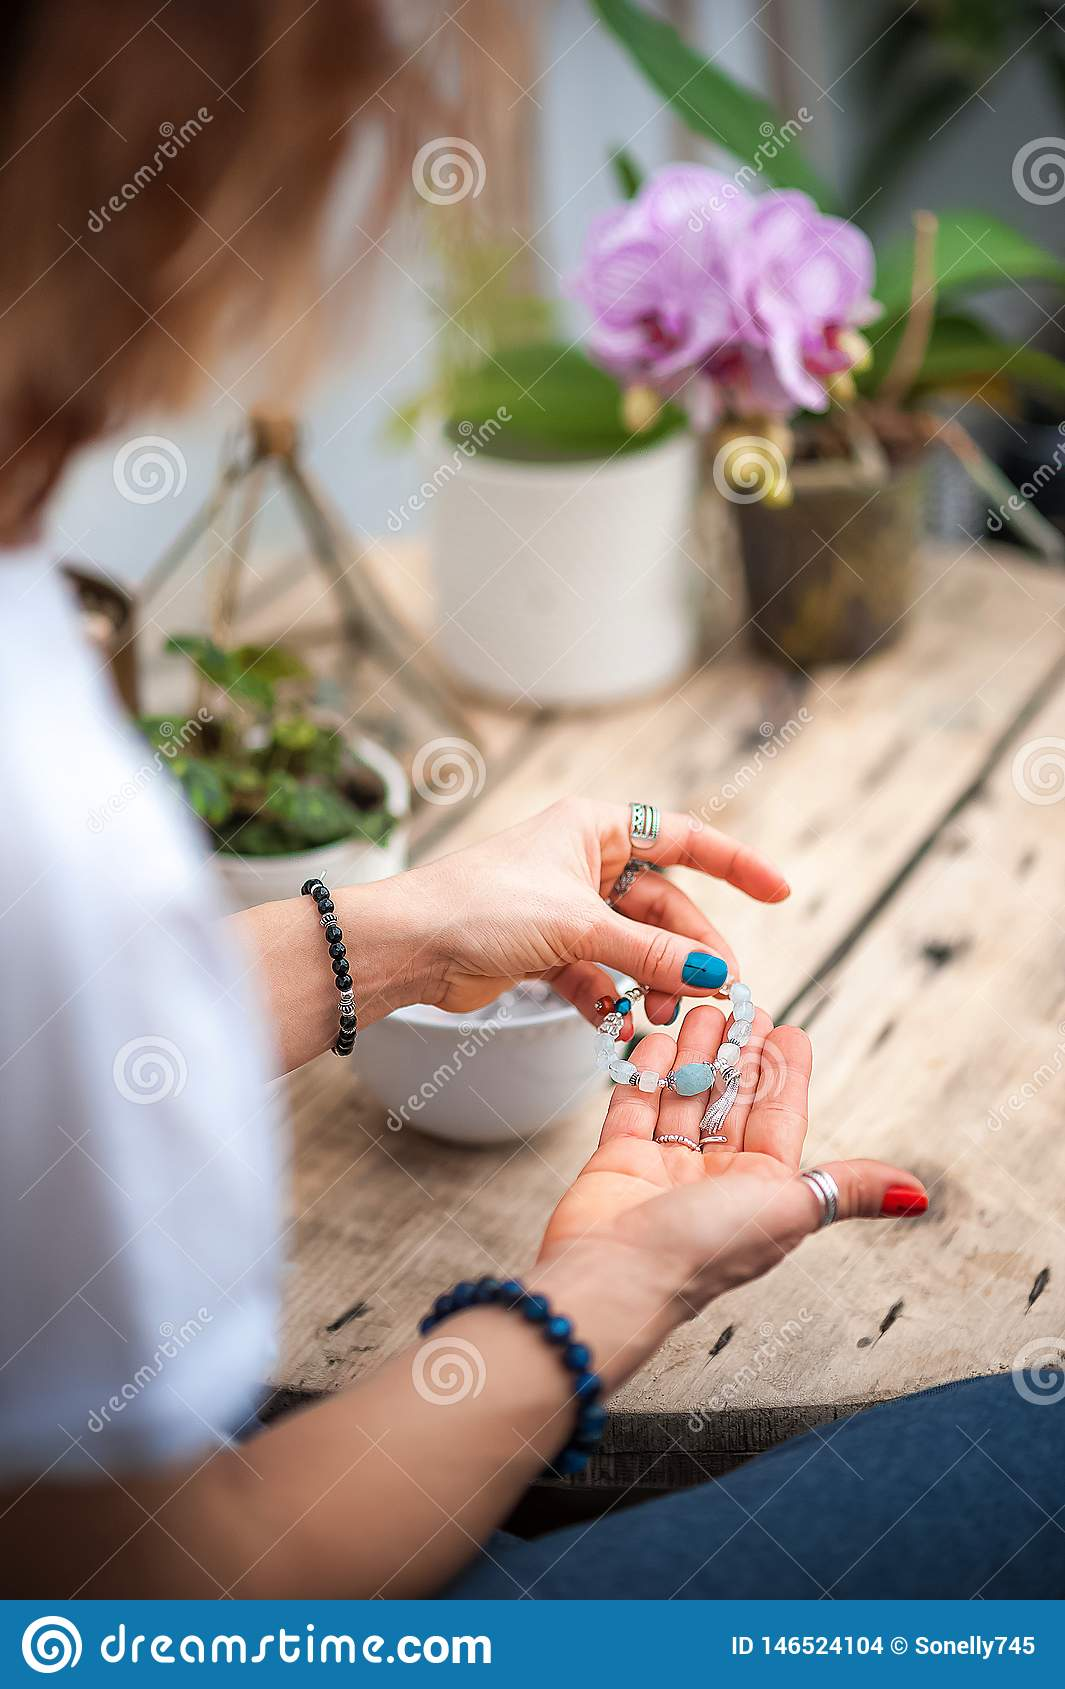 The hands of the girl touch the handmade jewelry. Girl and jewelry. Handmade woman decorating stones close up